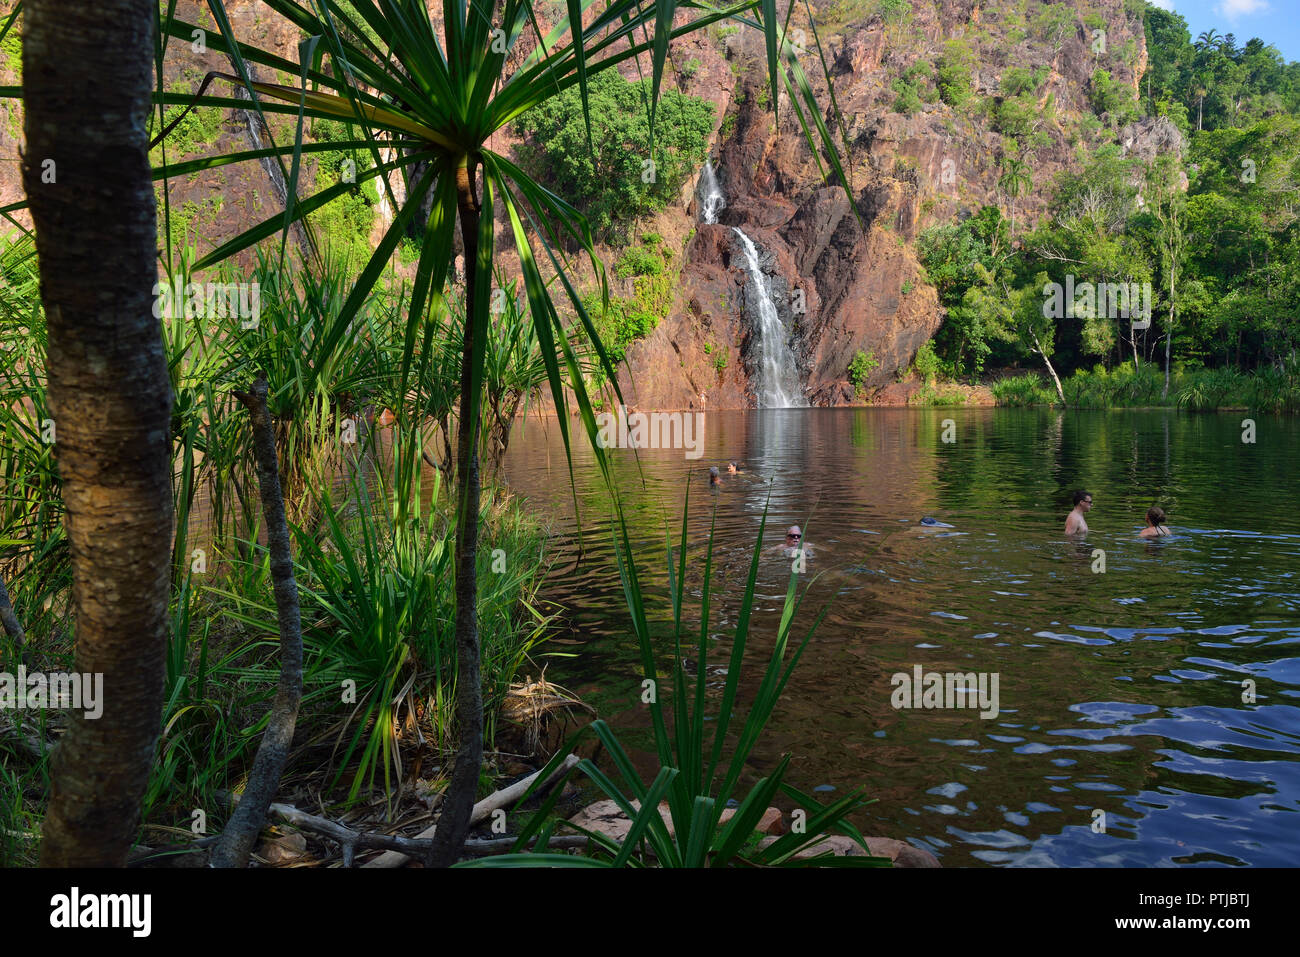 Wangi Falls, Litchfield National Park, Northern Territory, Australia - Stock Image